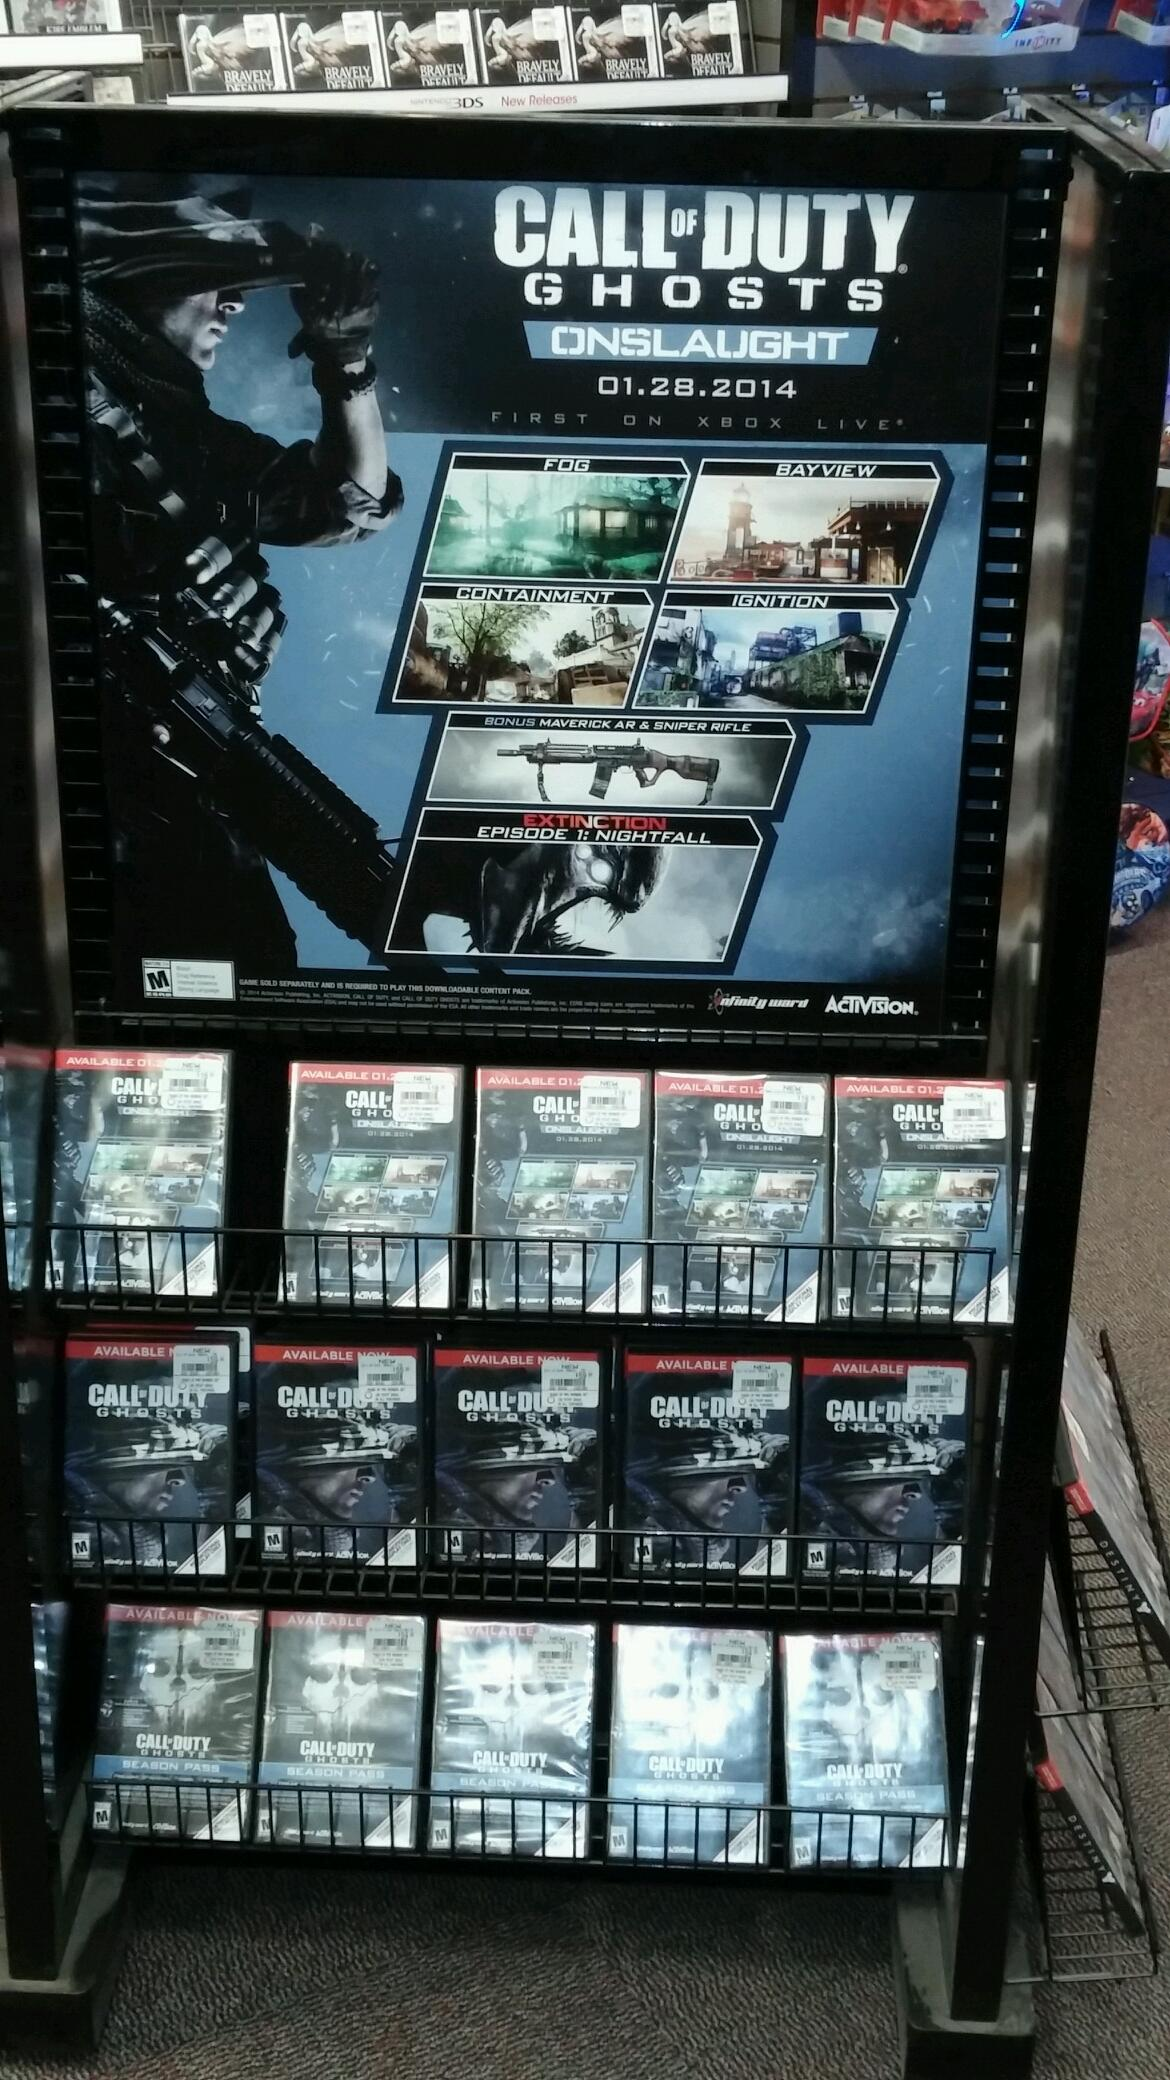 Leaked Poster Suggests Call Of Duty Ghosts Onslaught Dlc Is Dated